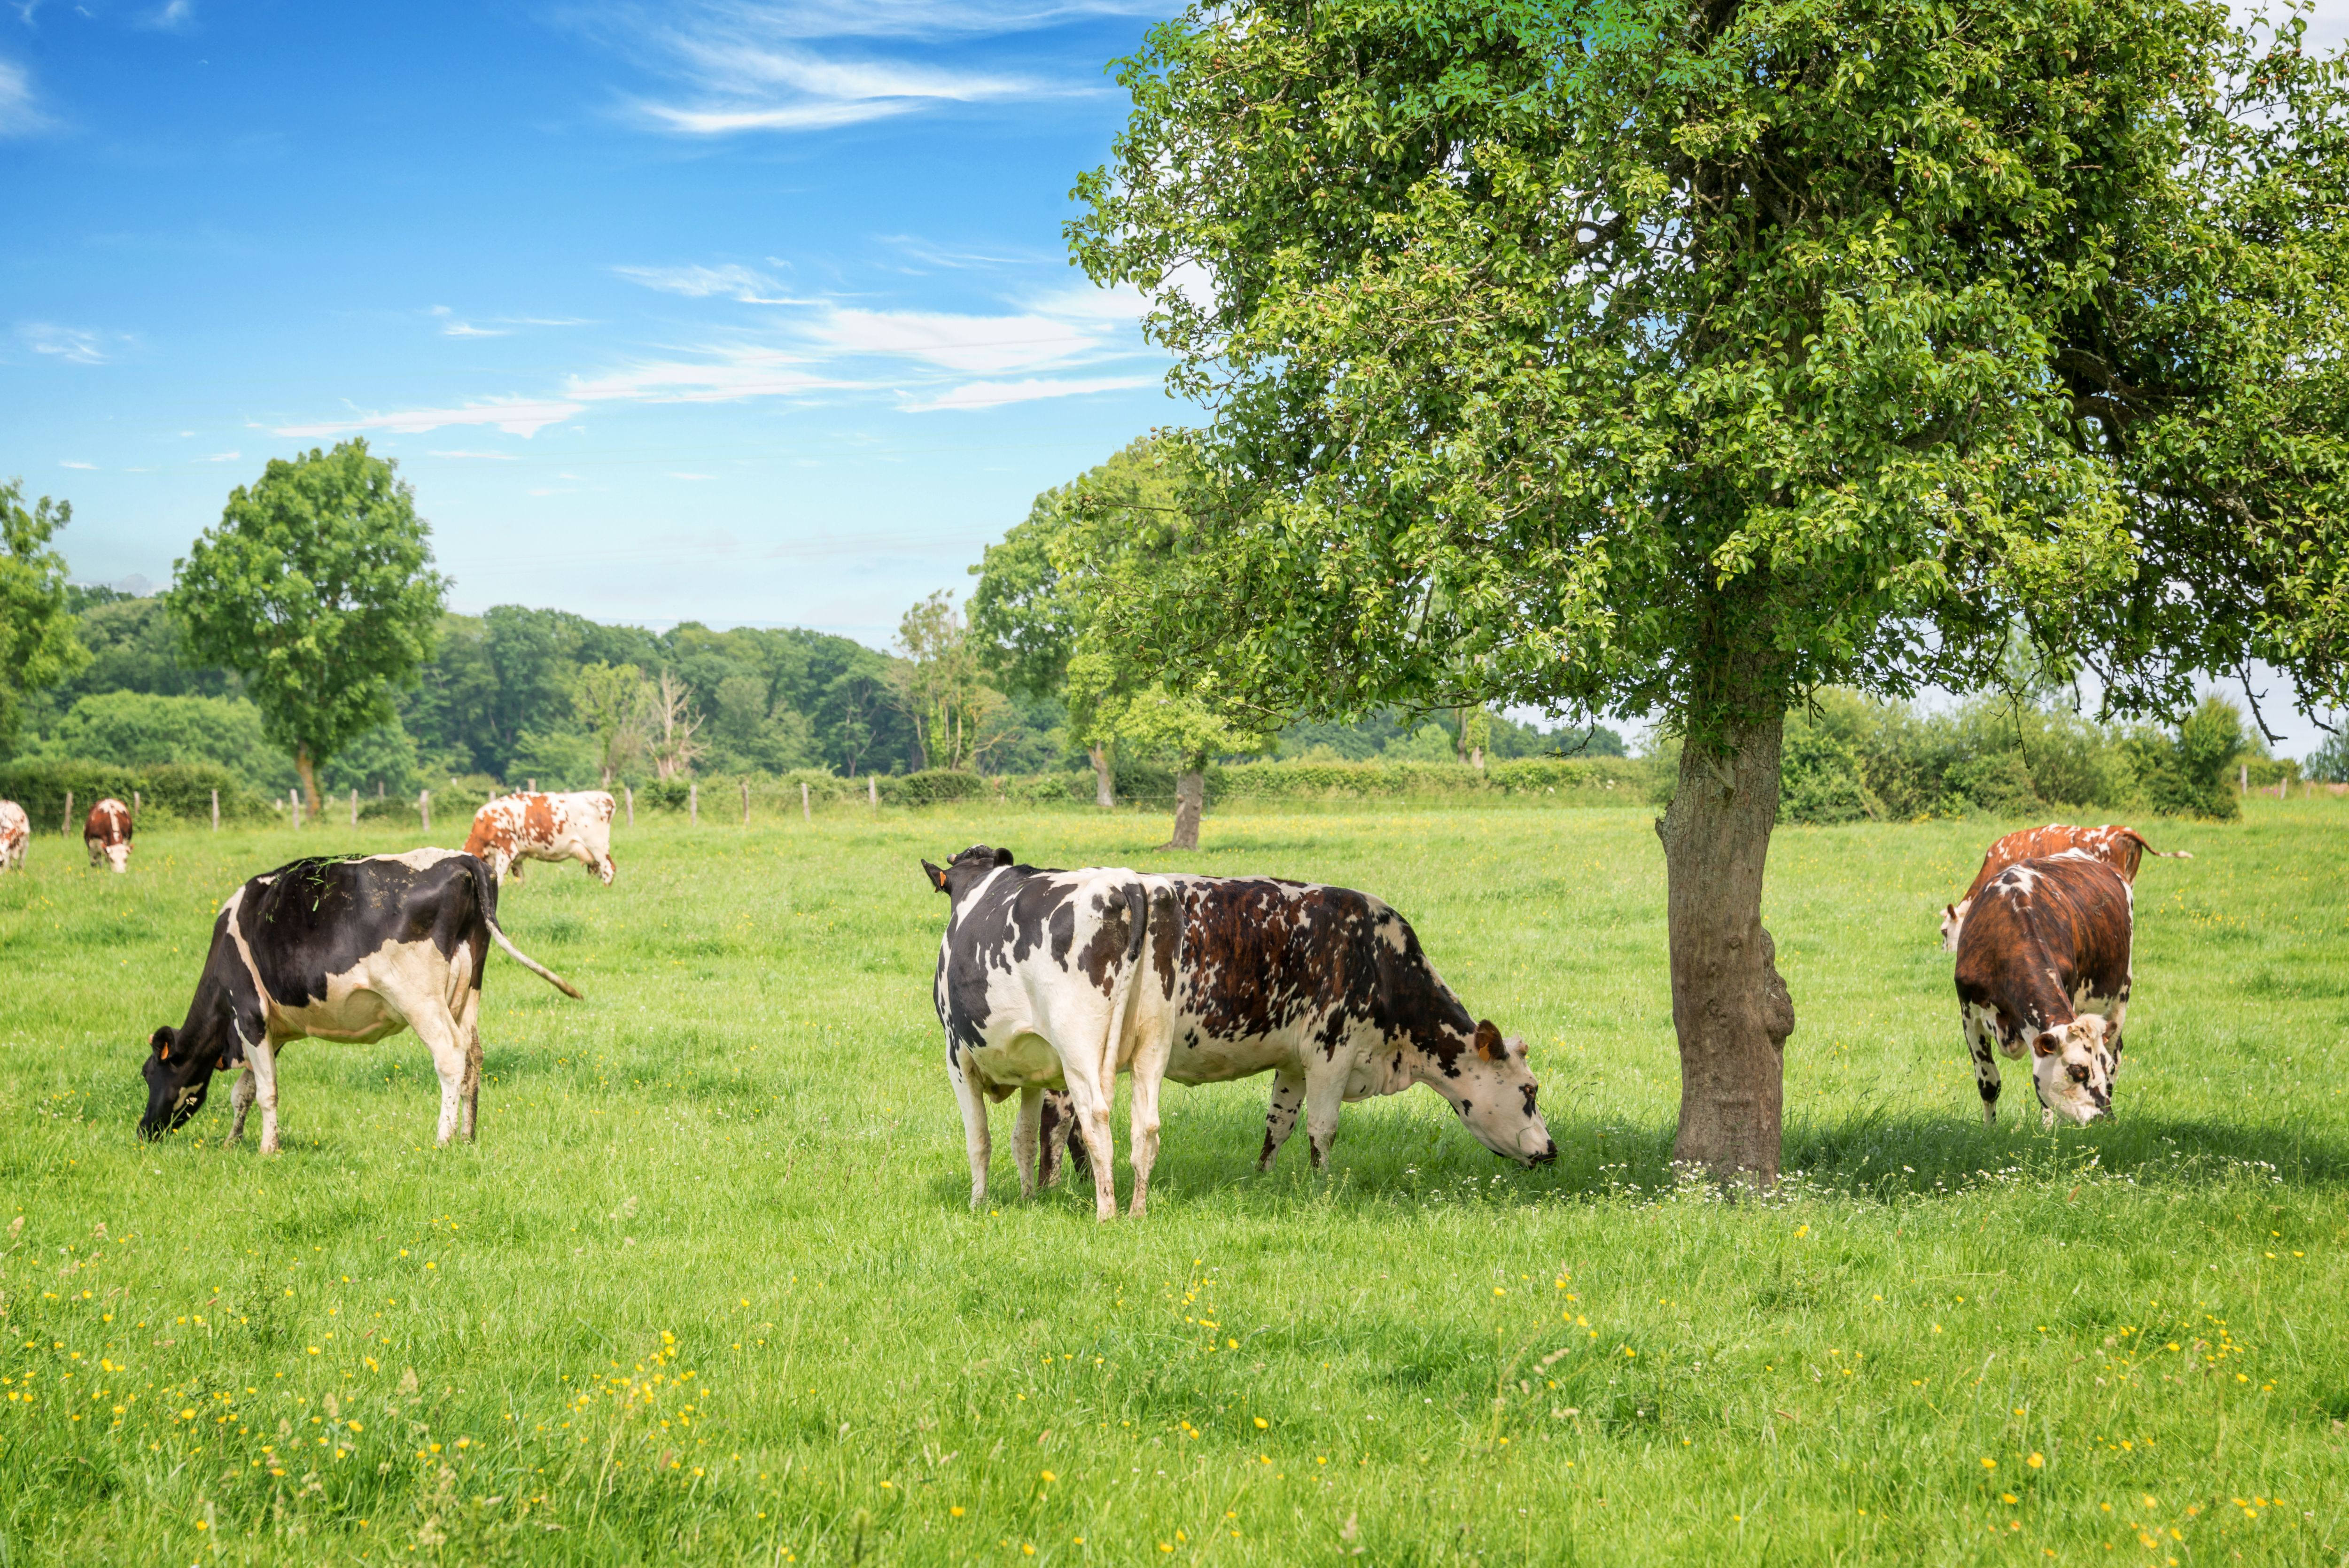 A photograph of cattle grazing on green pasture. There are broadleaf trees growing in the same fields as the cows are grazing